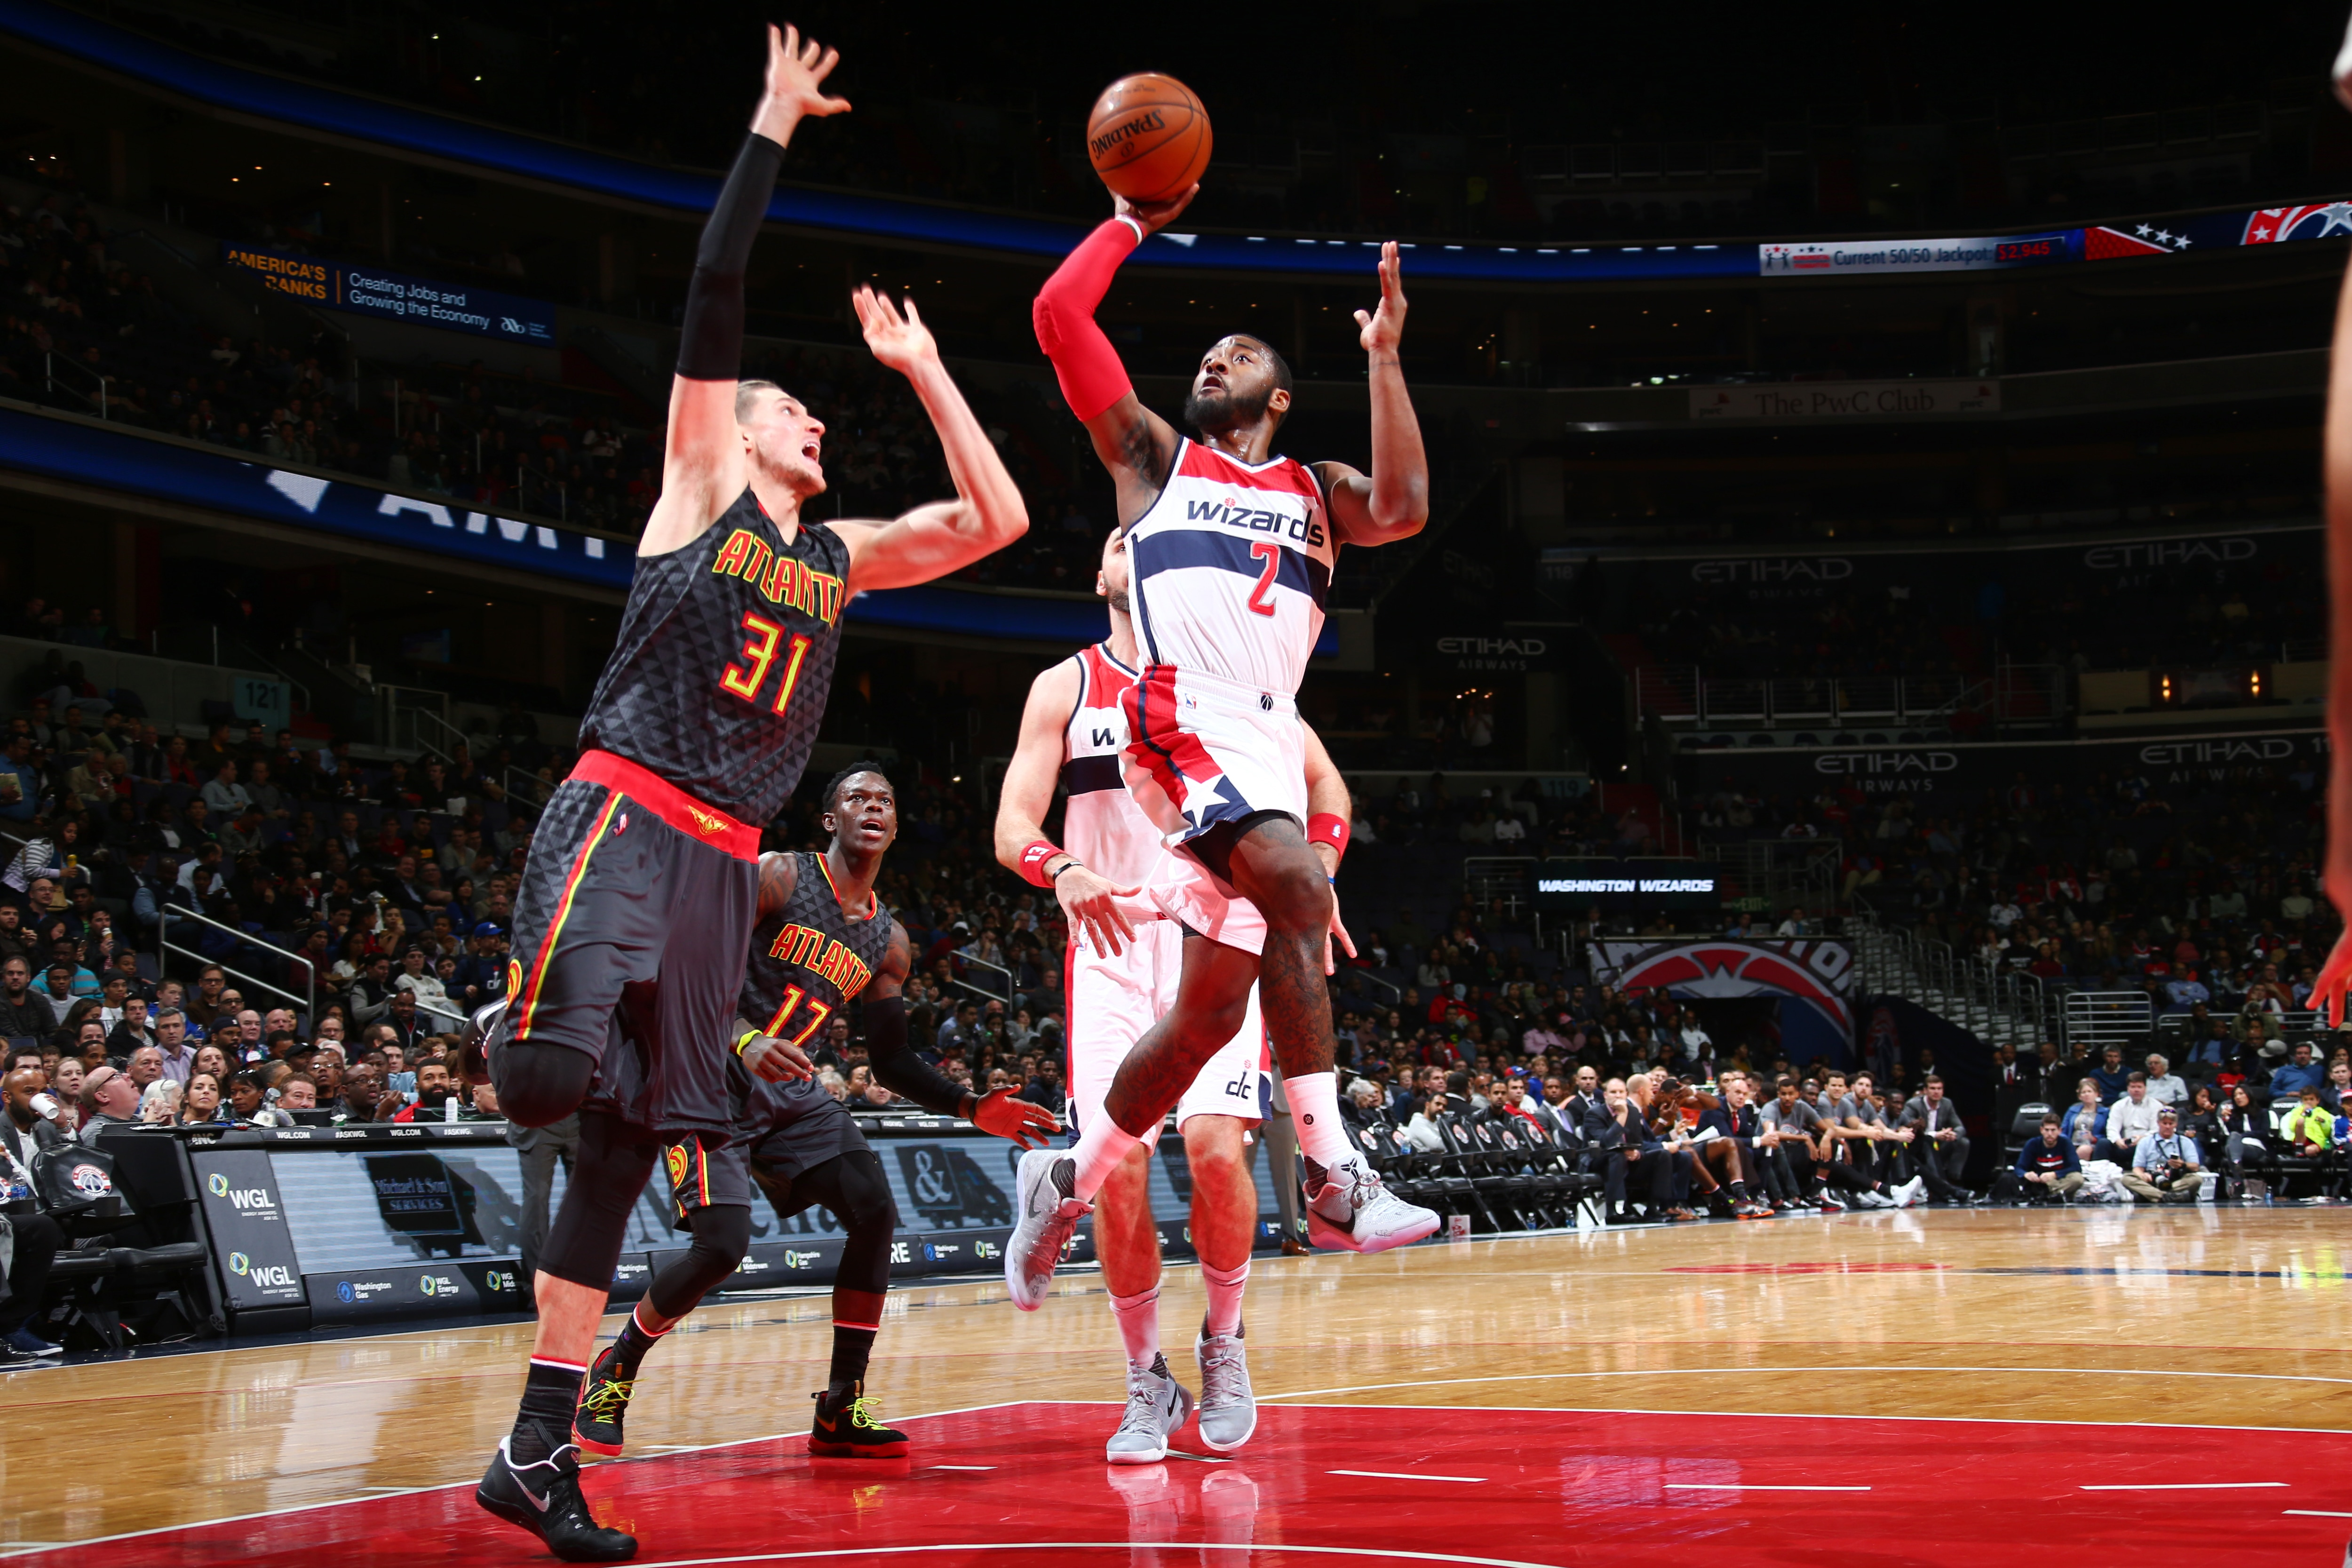 Roundtable: Five questions heading into WizHawks